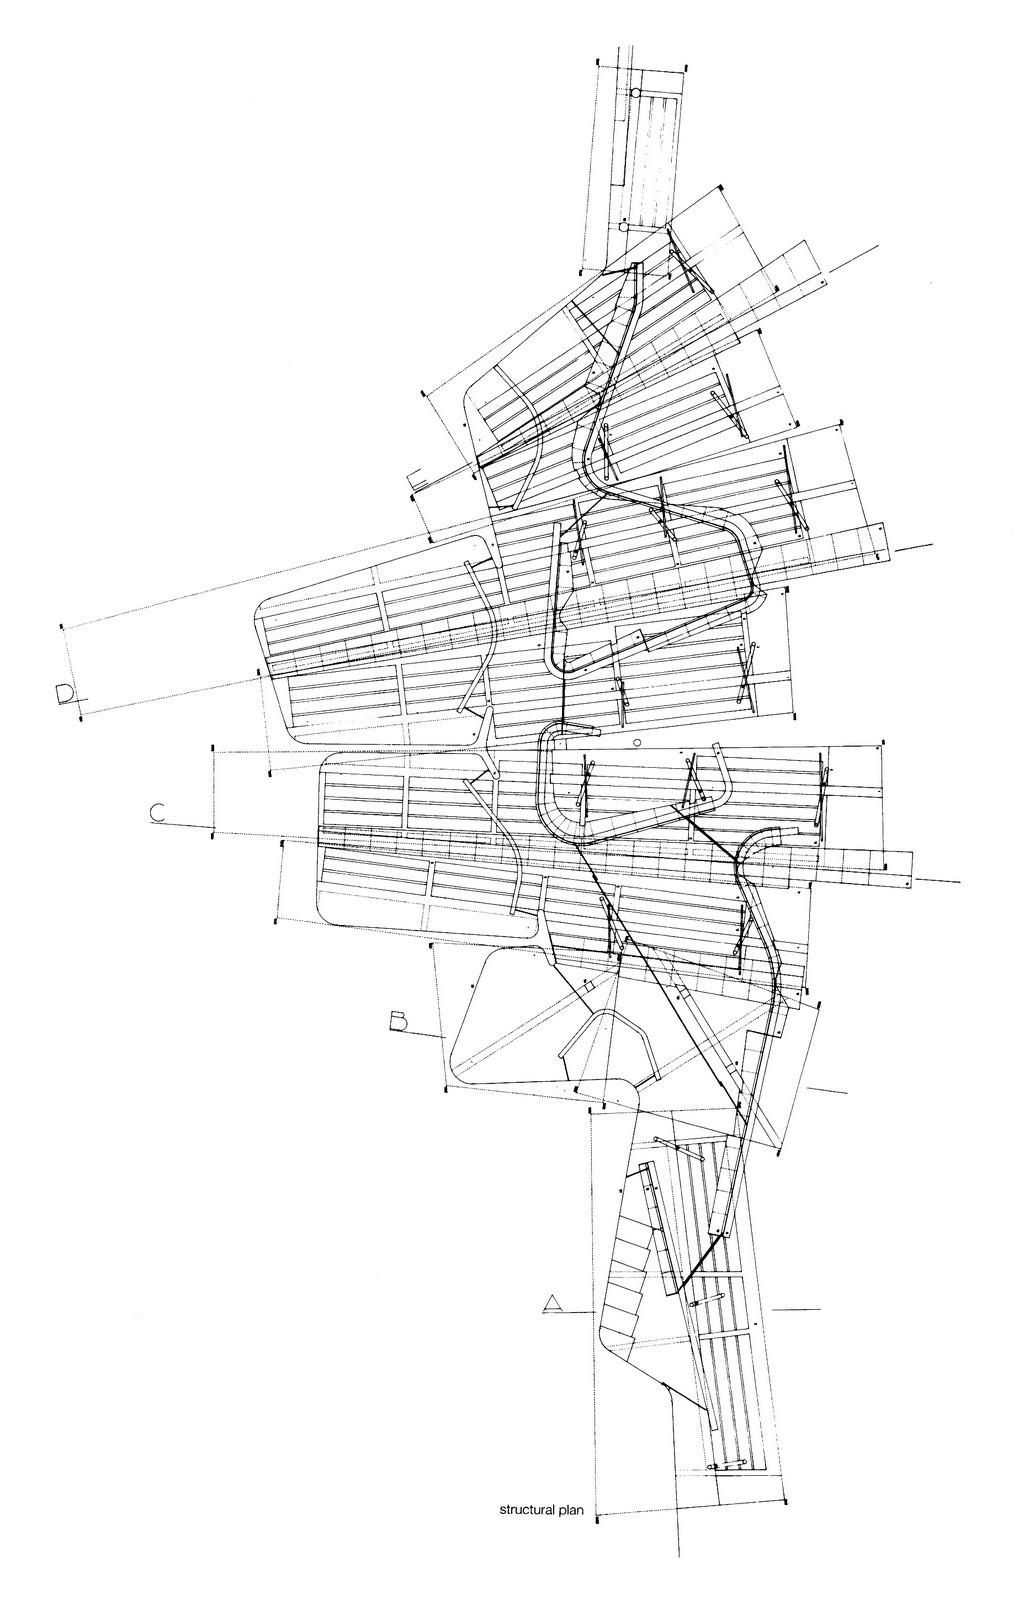 ad classics olympic archery range enric miralles carme pinos [ 1024 x 1600 Pixel ]